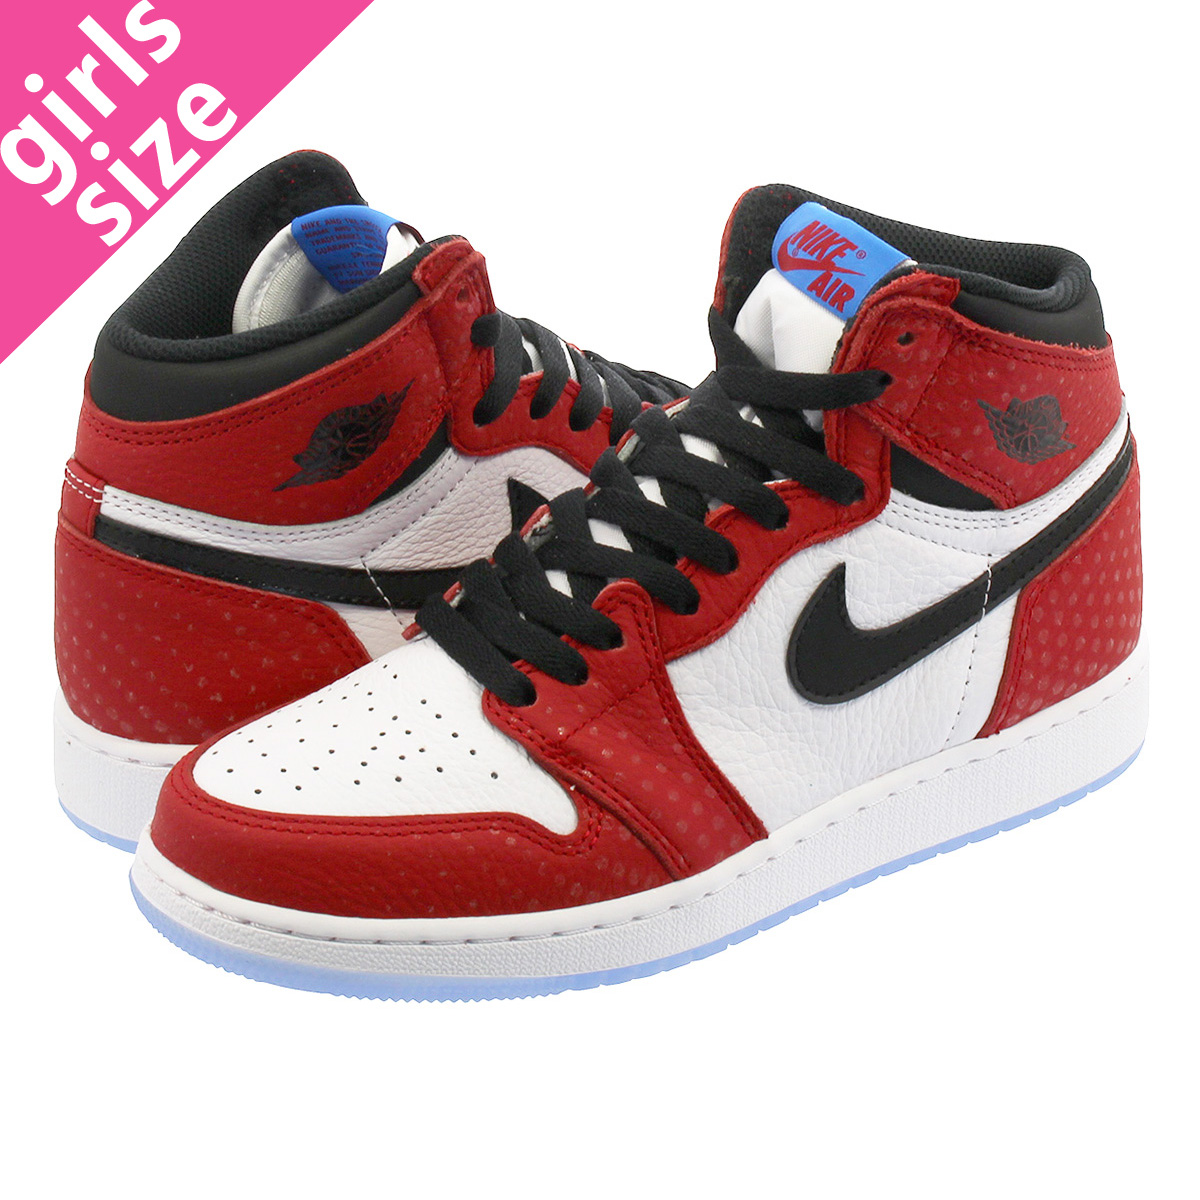 2fd8fecbb7983f NIKE AIR JORDAN 1 RETRO HIGH OG GS Nike Air Jordan 1 nostalgic high OG GS  GYM RED WHITE PHOTO BLUE BLACK